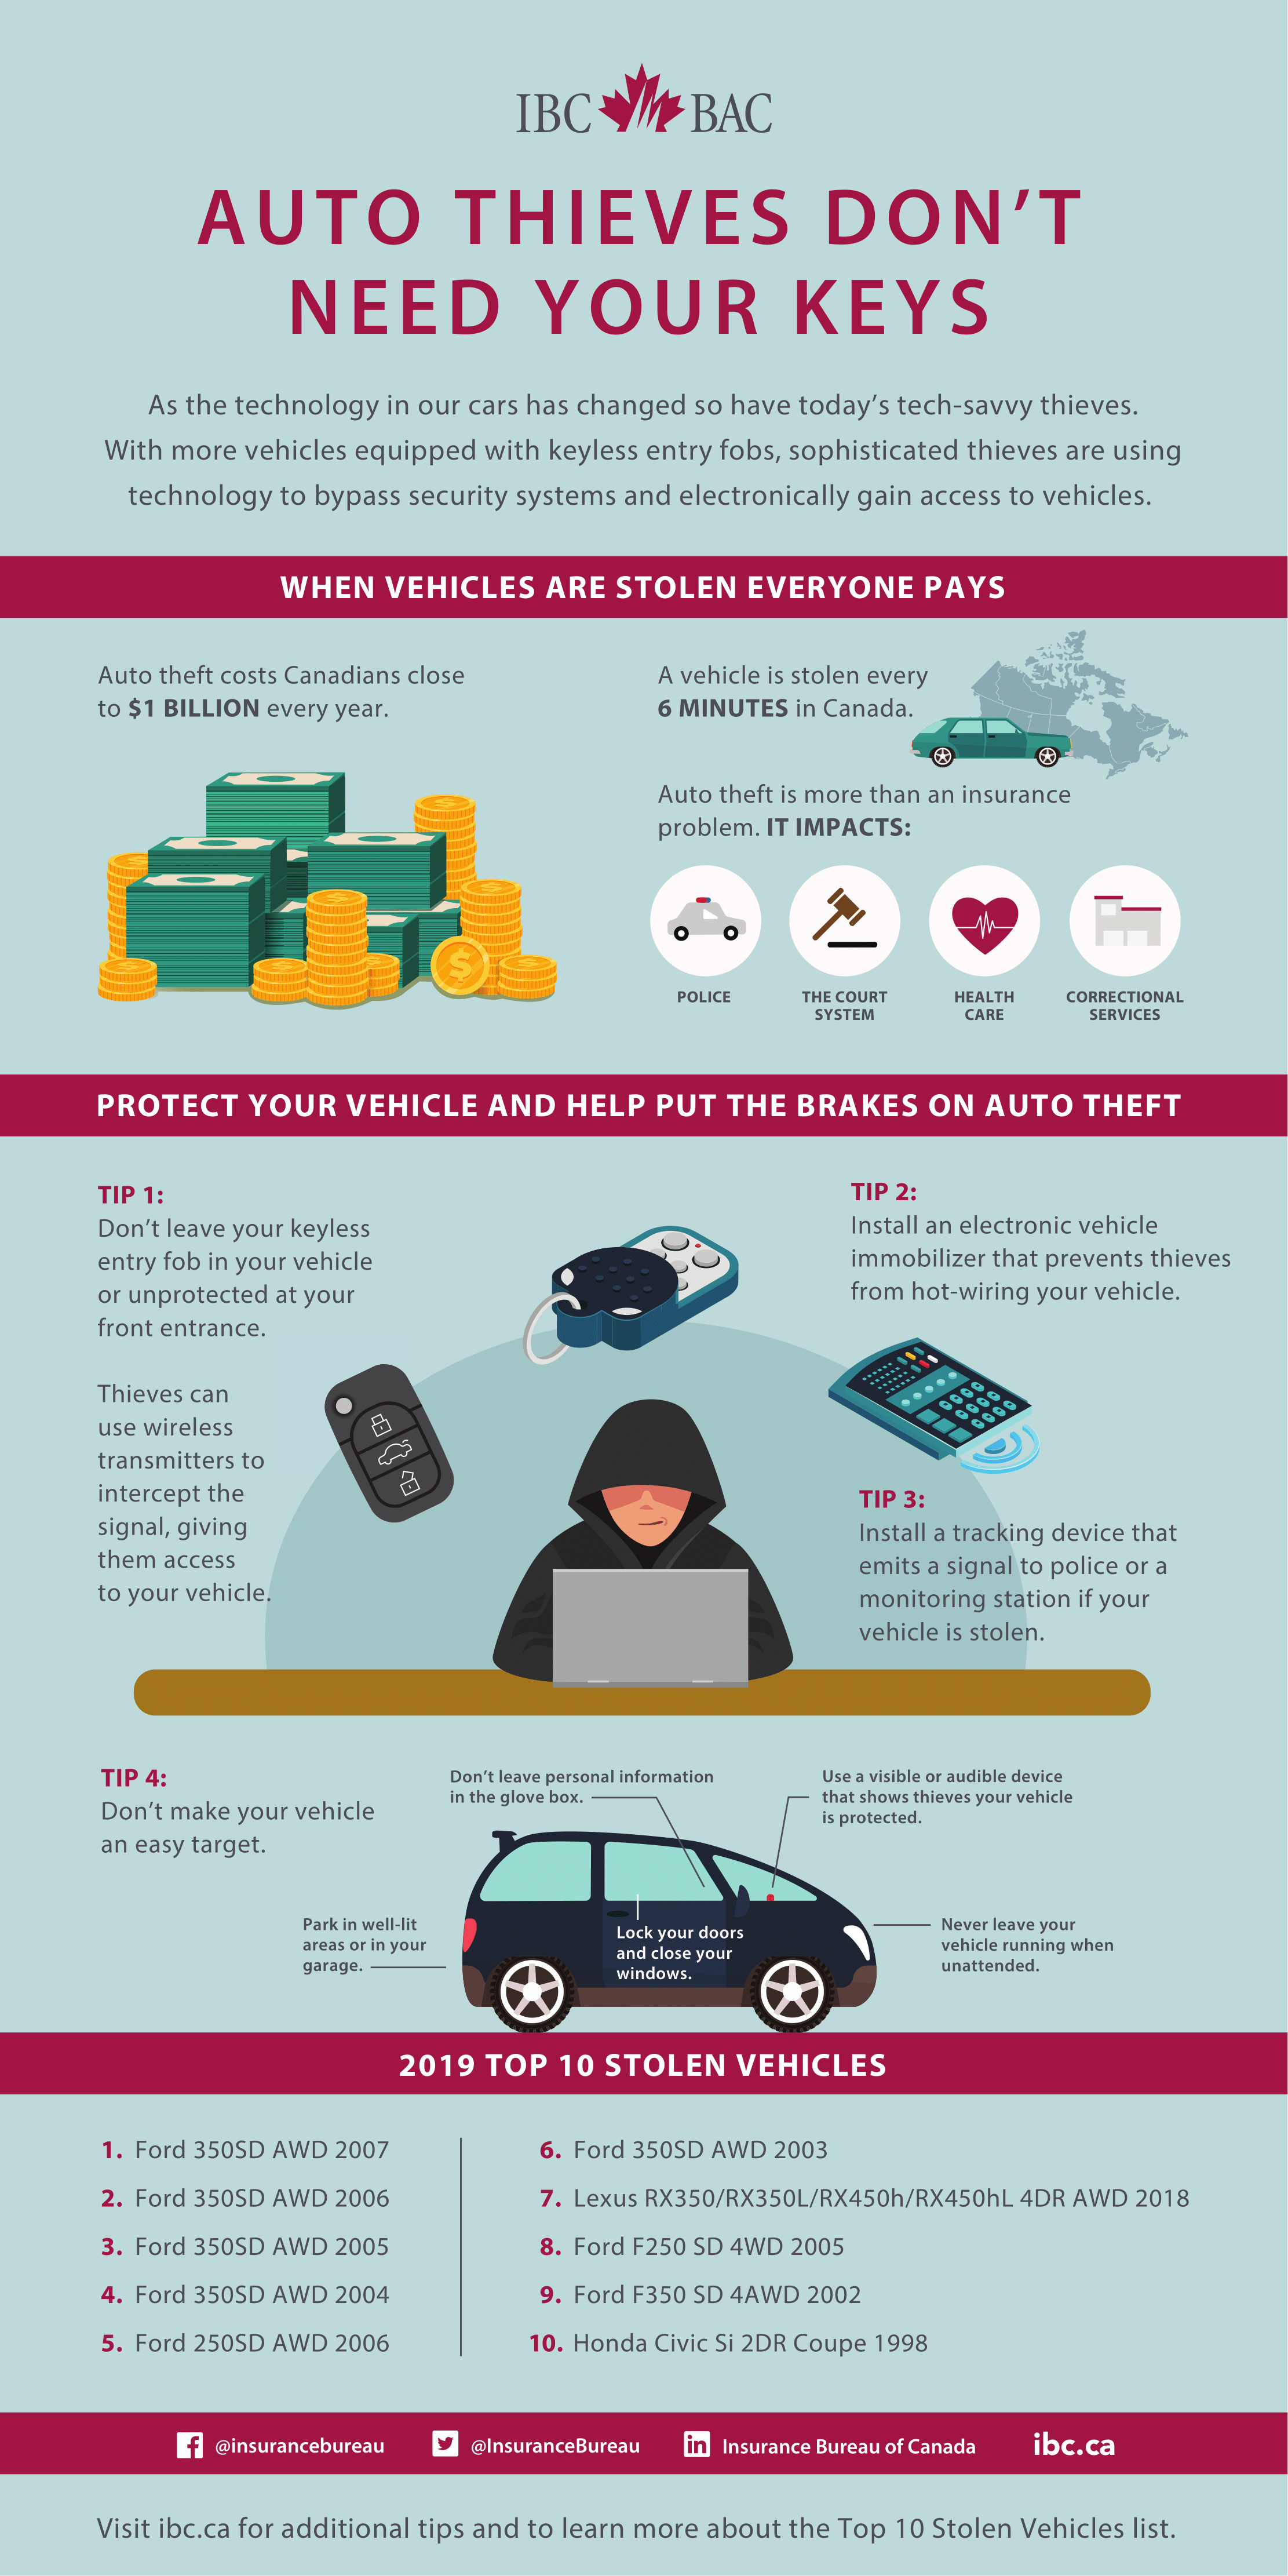 Auto-thieves-dont-need-your-keys-1